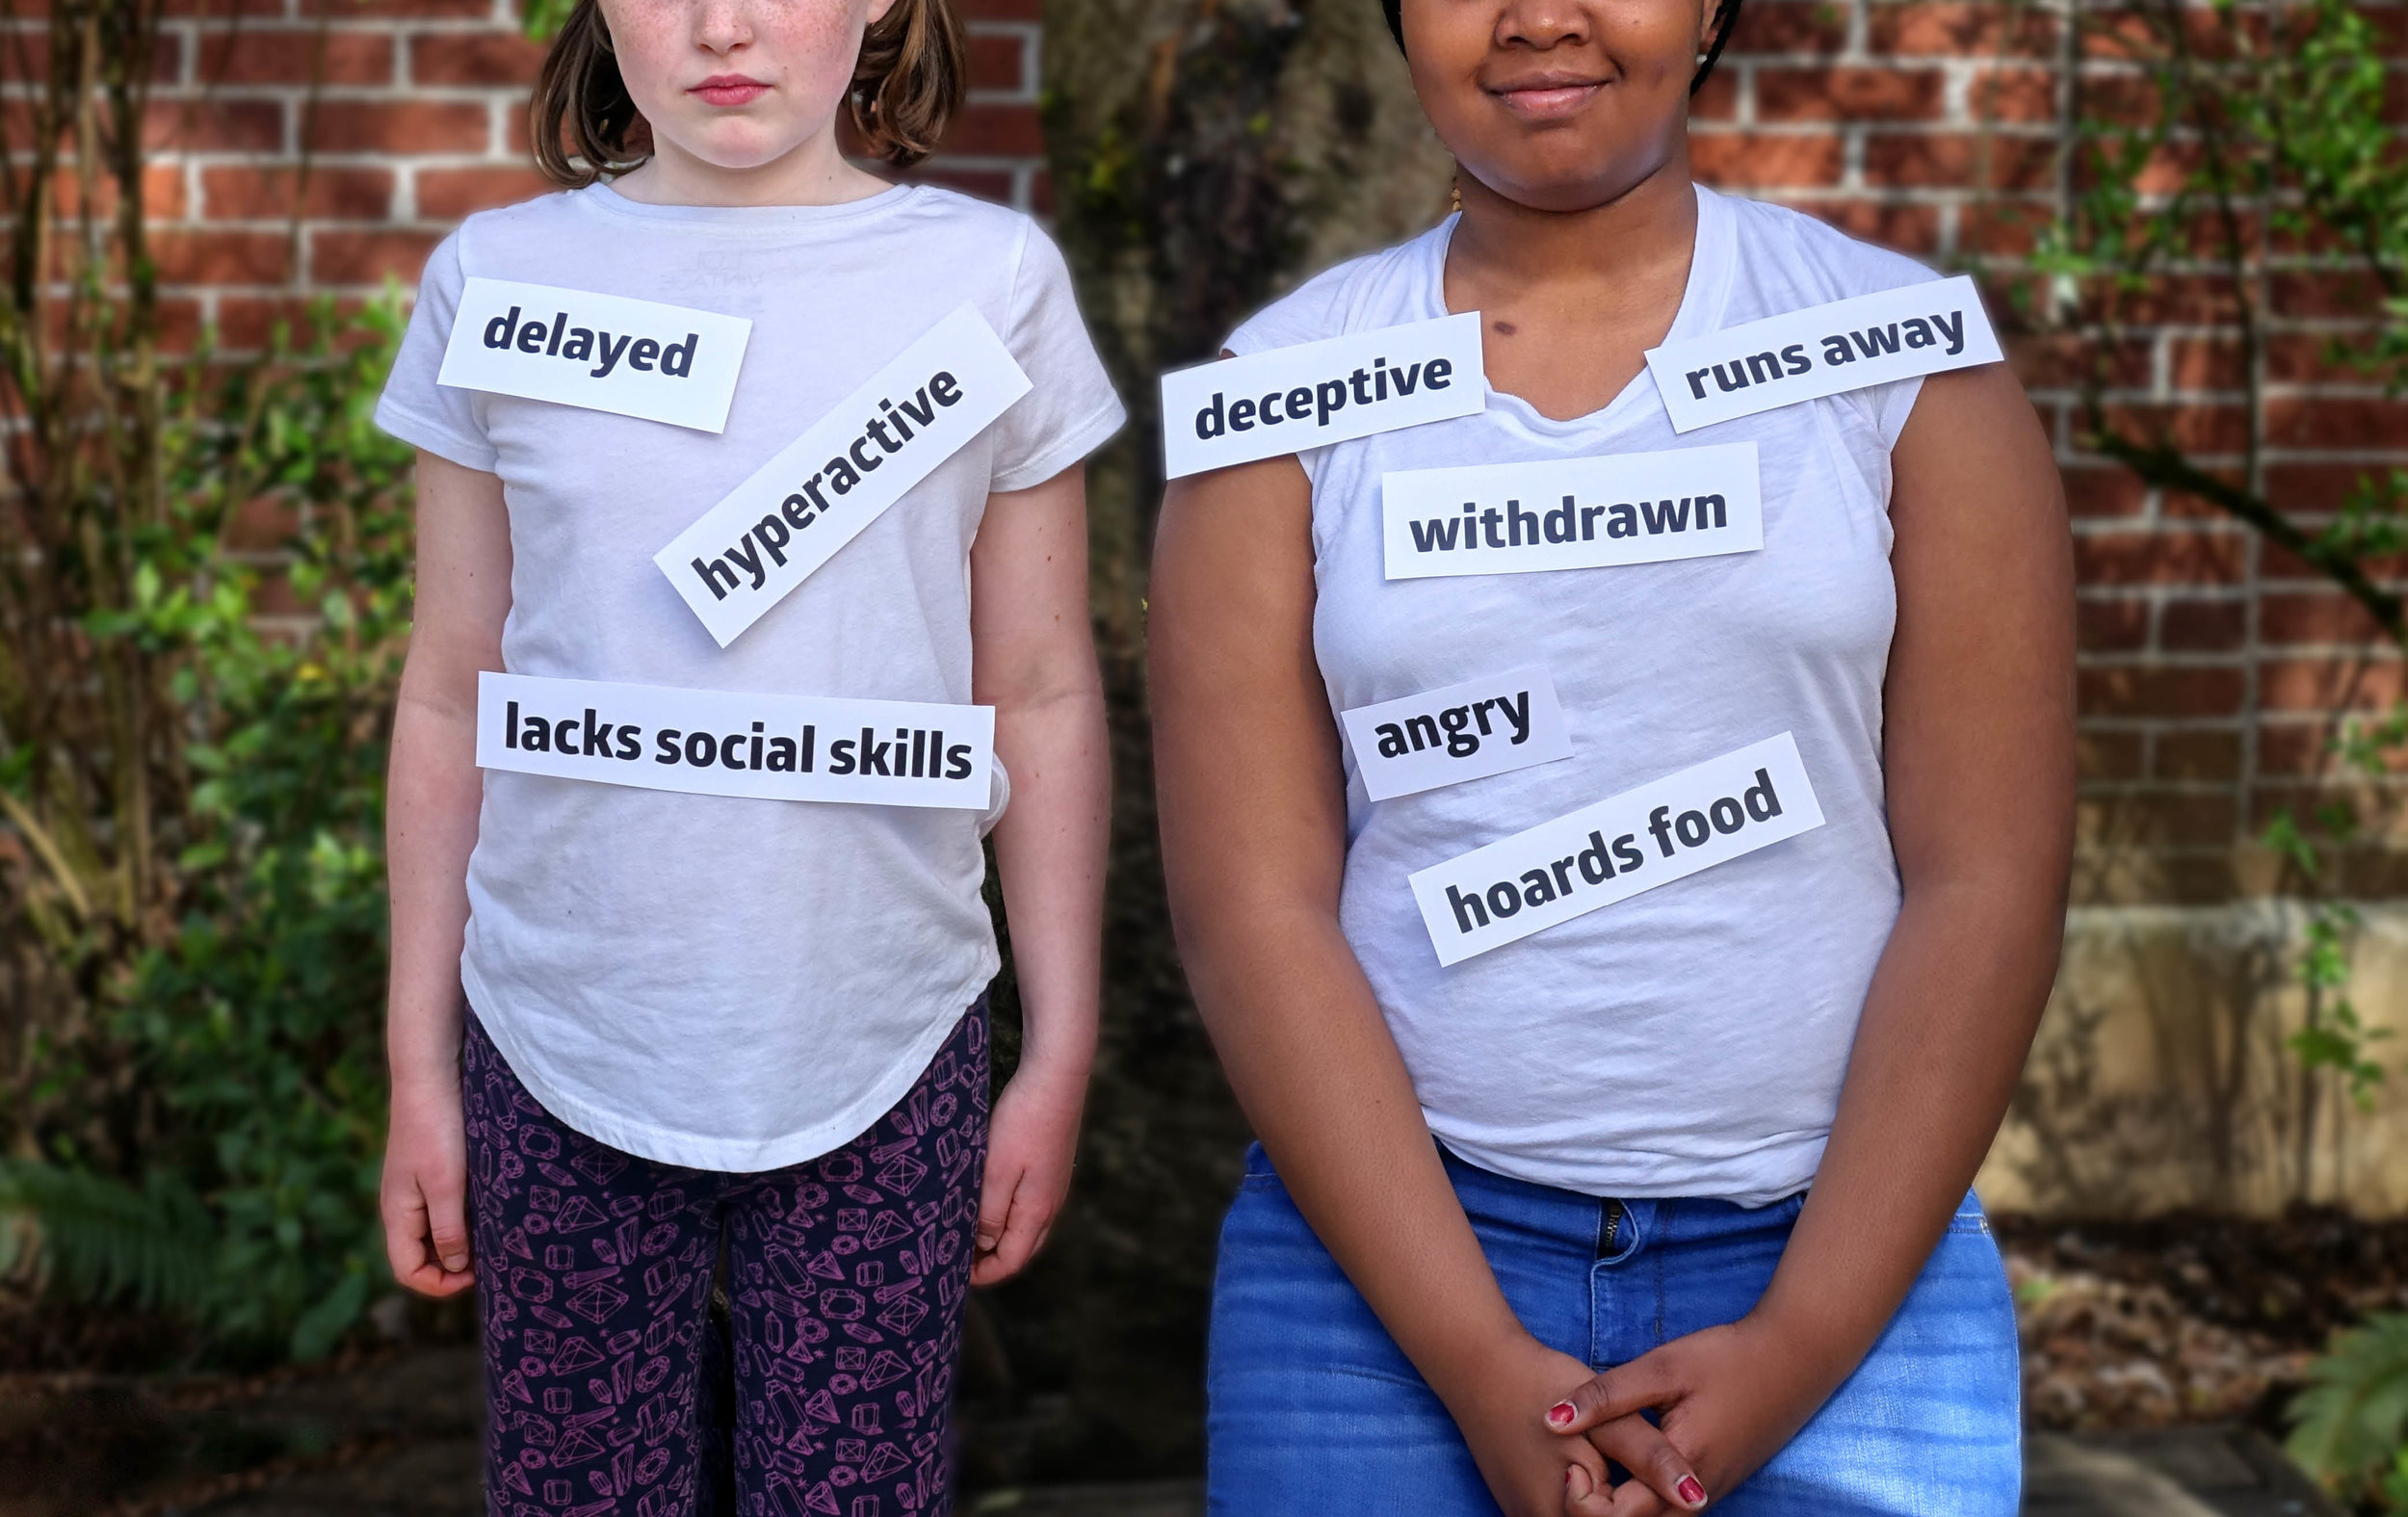 Children in foster care get stuck with labels -